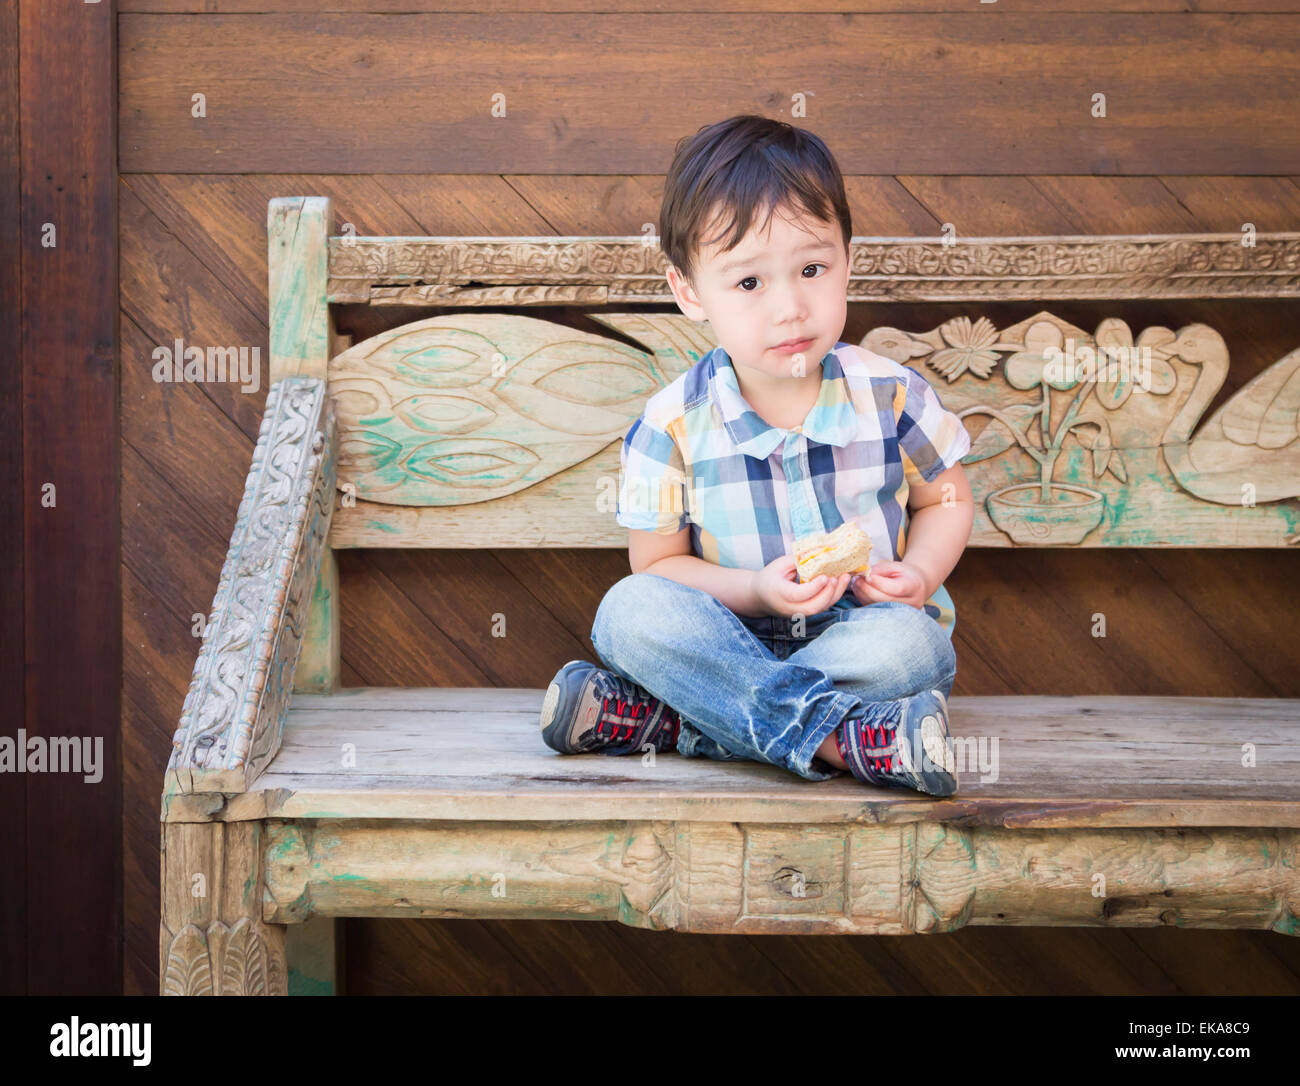 Cute Relaxed Mixed Race Boy Sitting on Bench Eating His Sandwich. Stock Photo